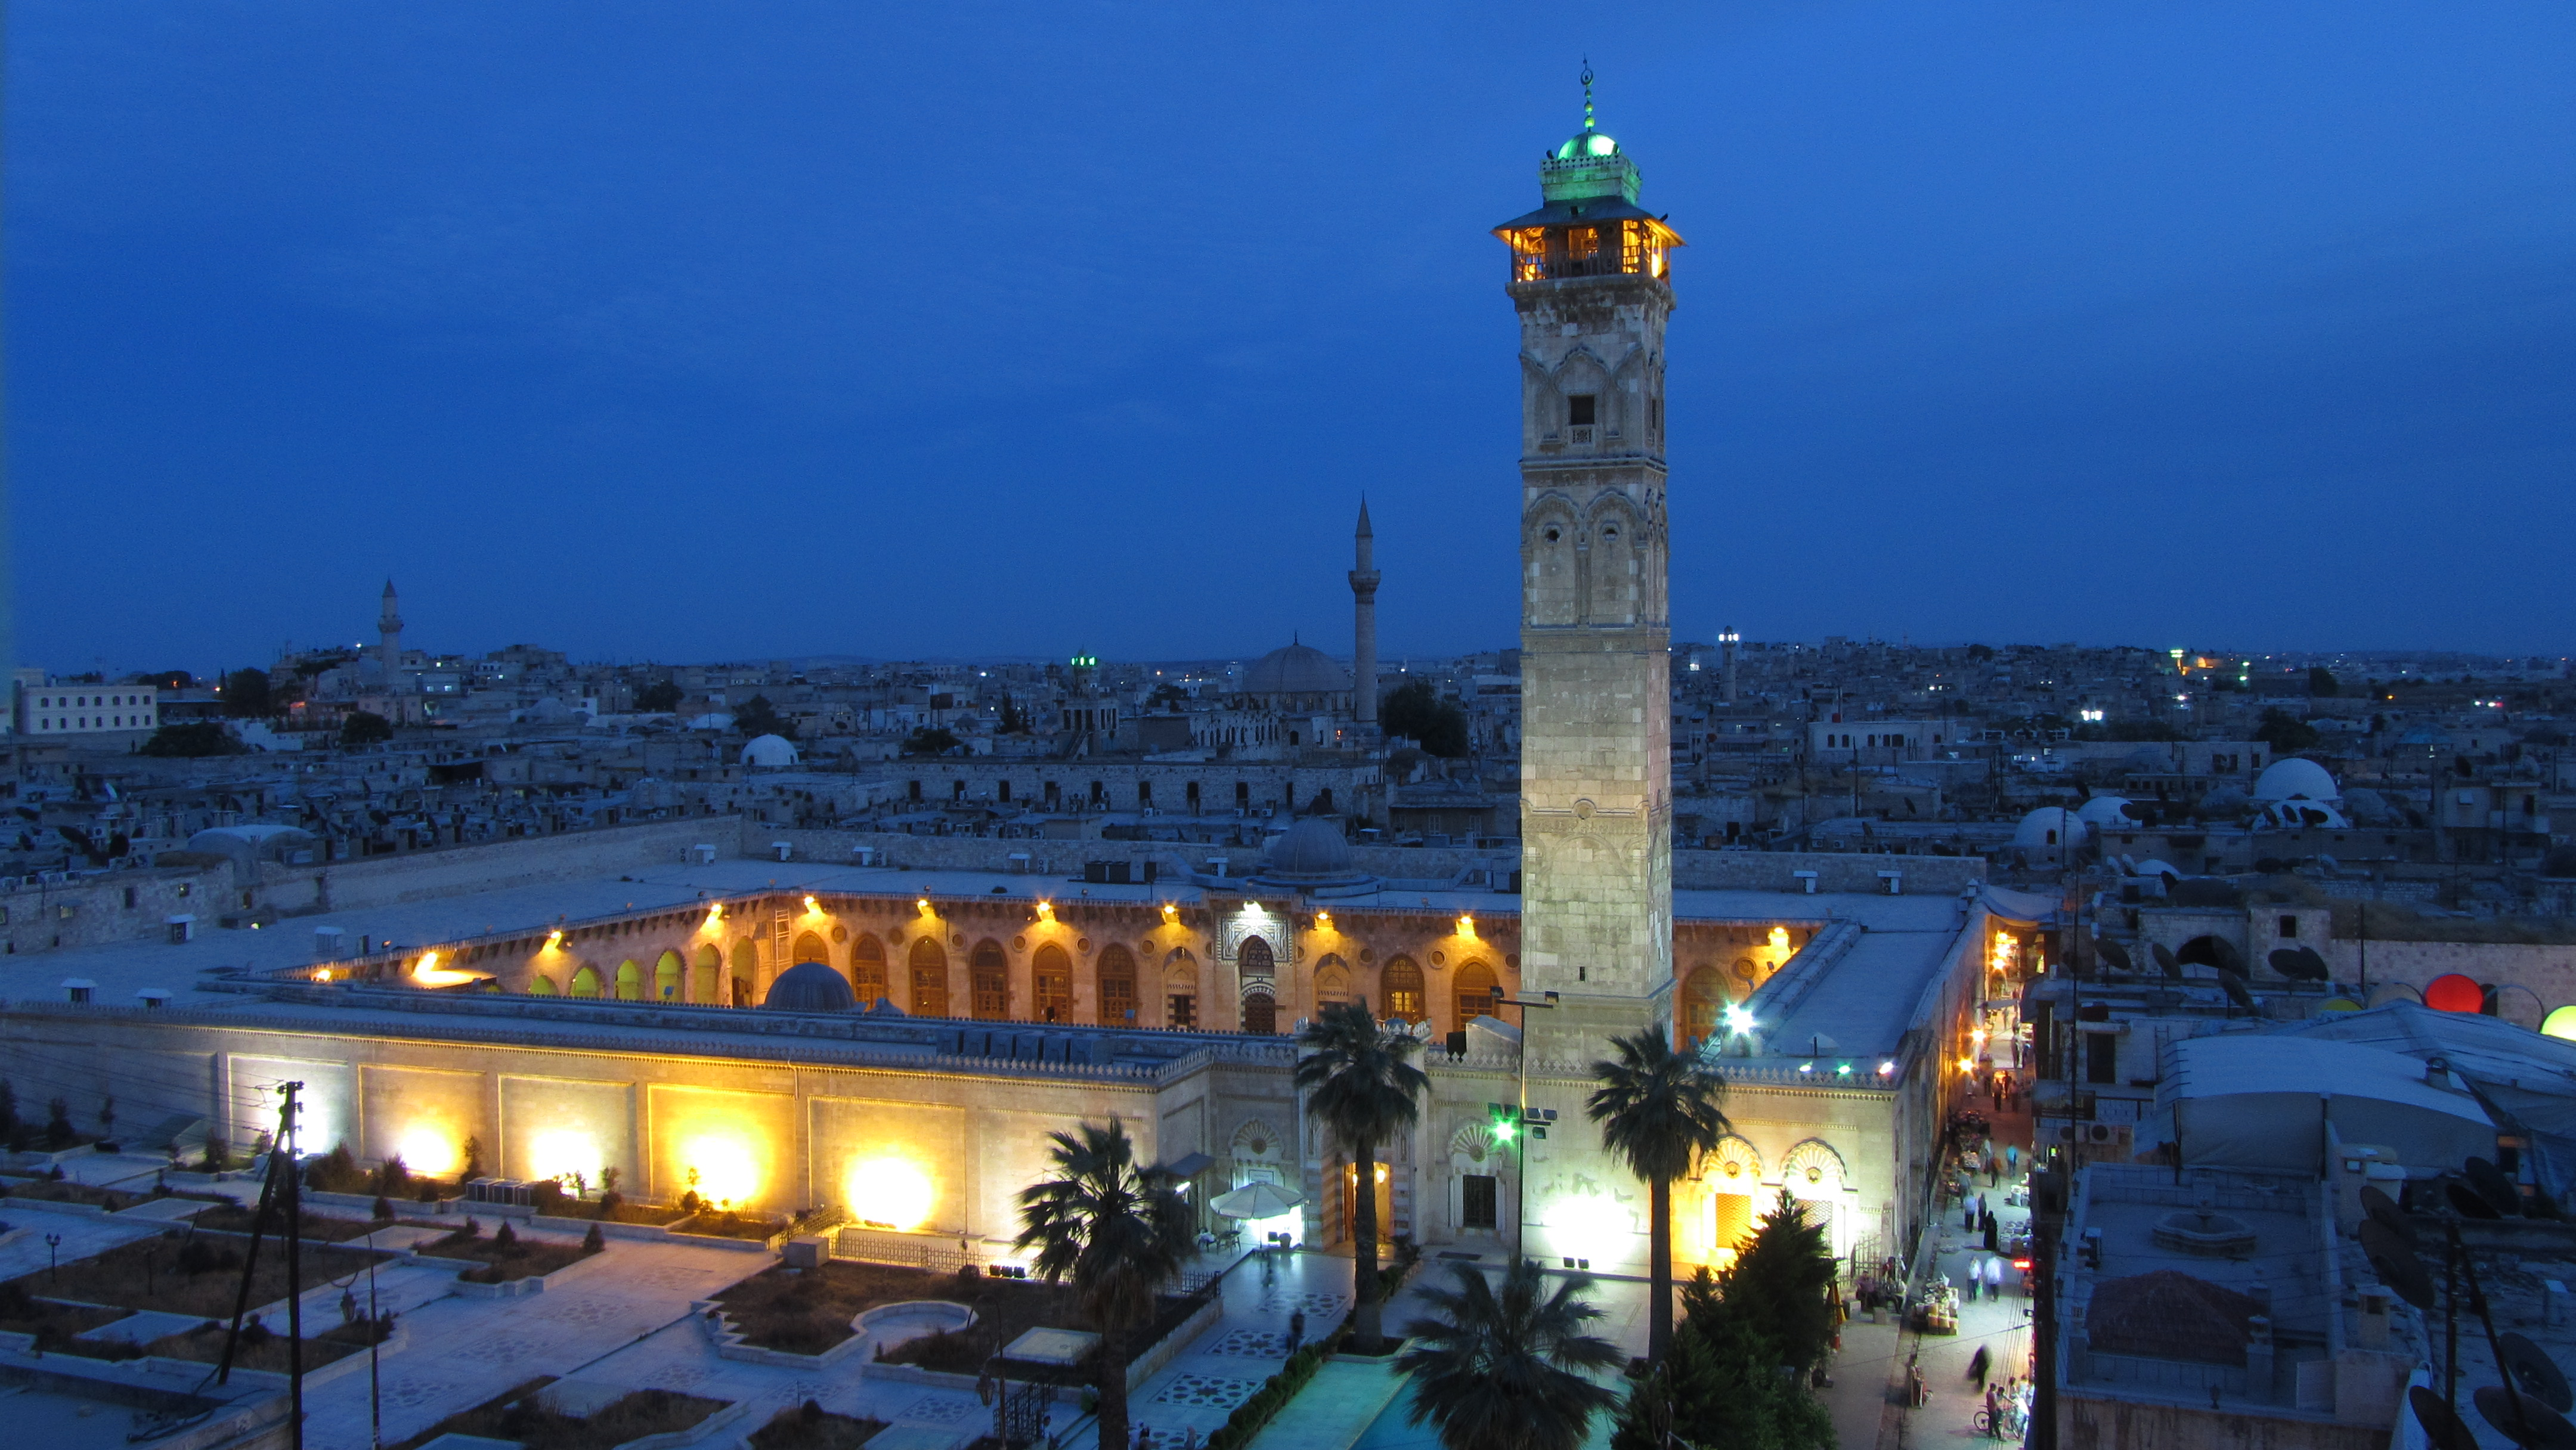 File:The great Umayyad mosque in Aleppo at night JPG